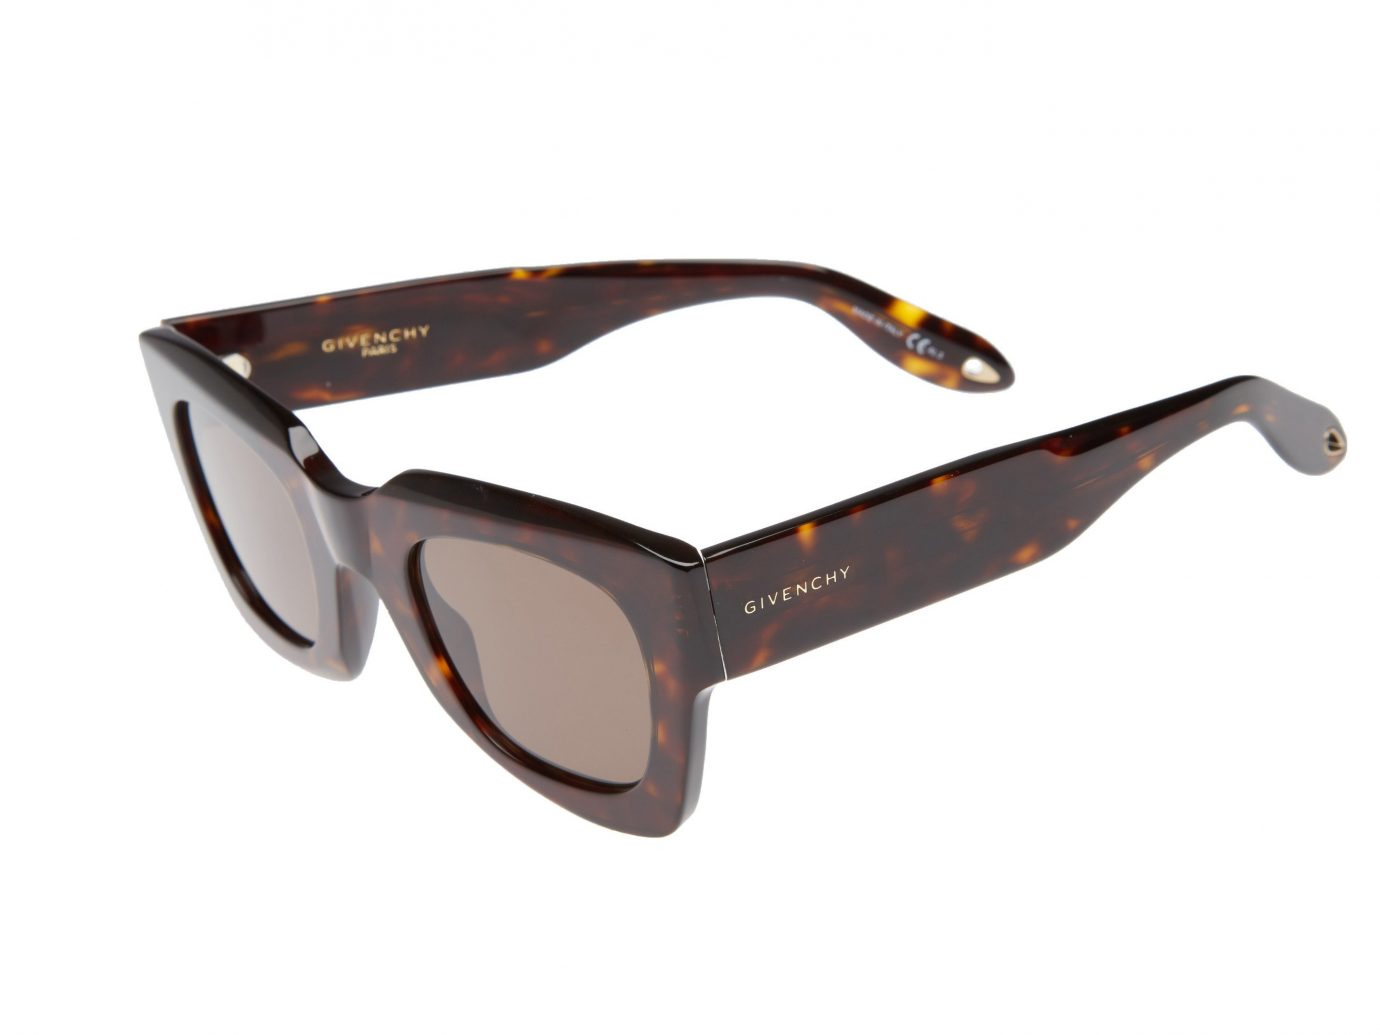 Style + Design eyewear spectacles sunglasses glasses vision care brown goggles product accessory product design personal protective equipment font